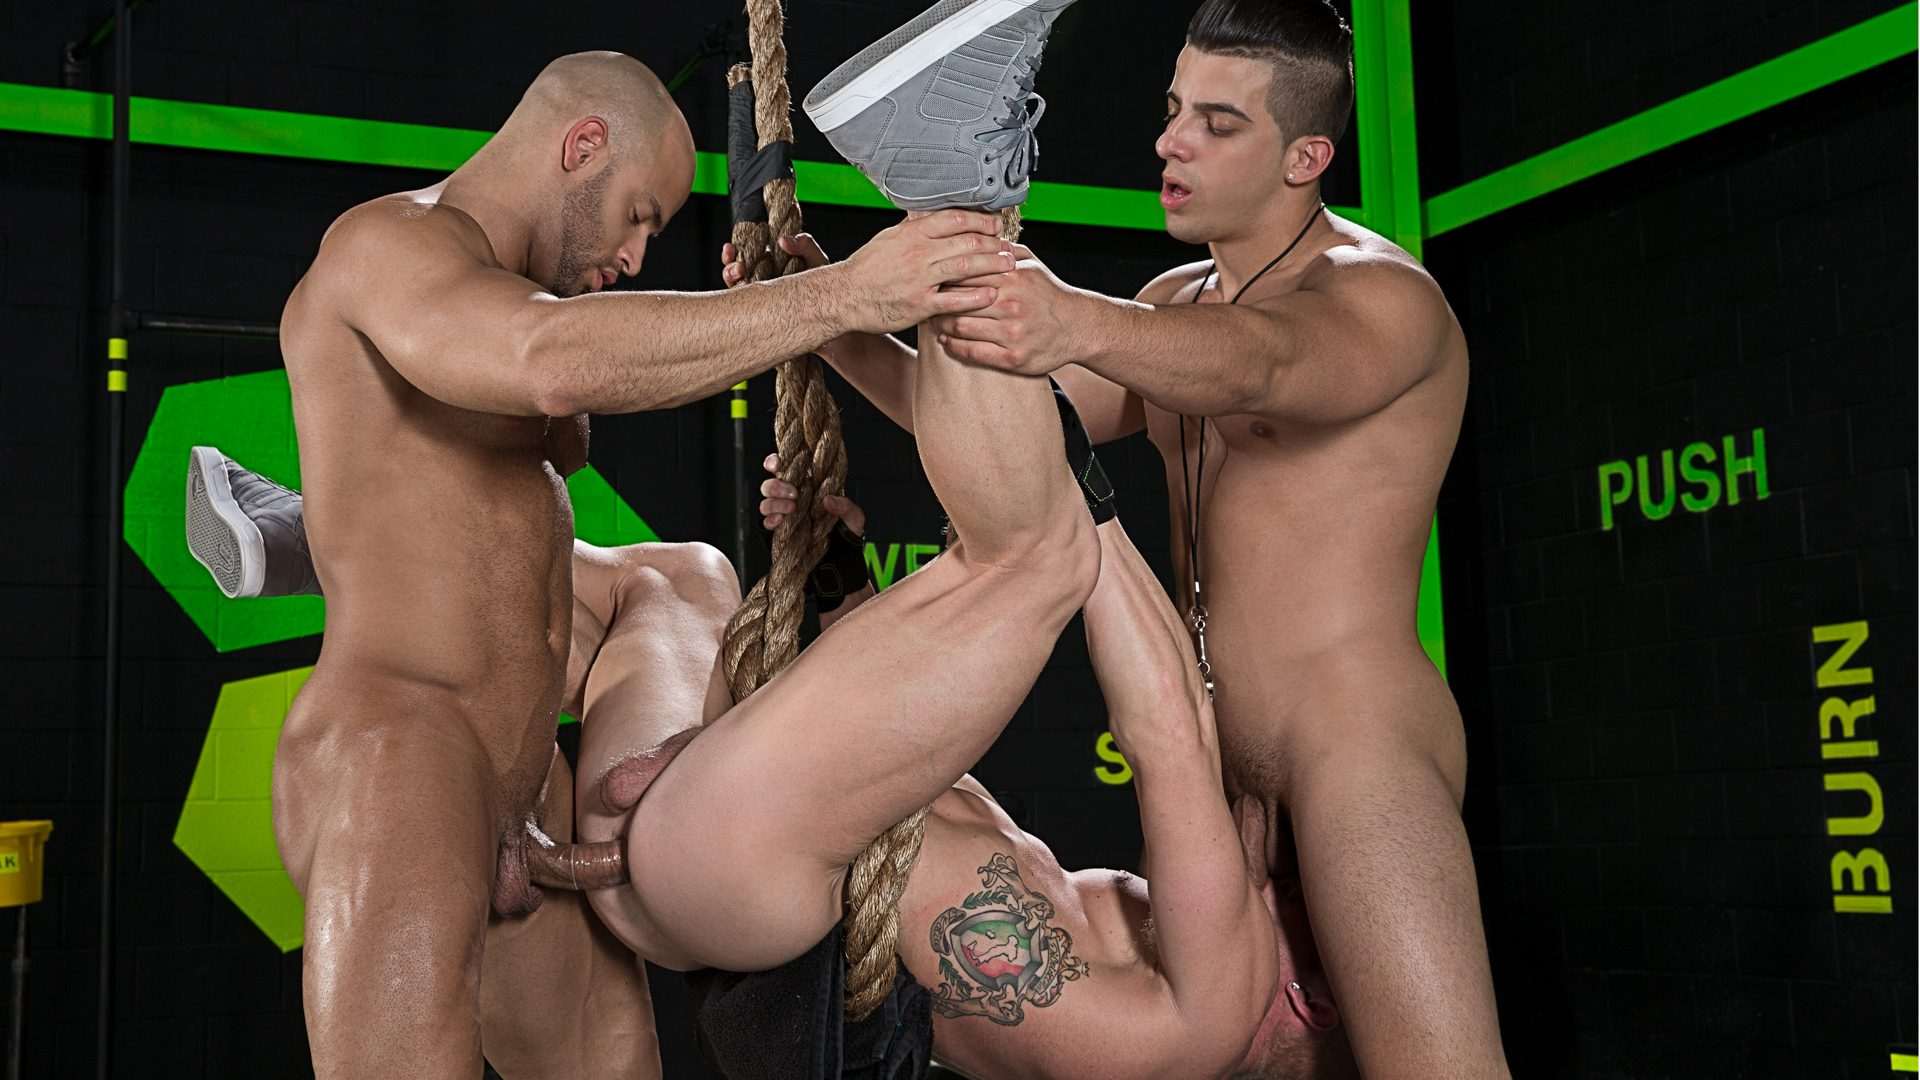 Johnny V, Sean Zevran and Jacob Taylor